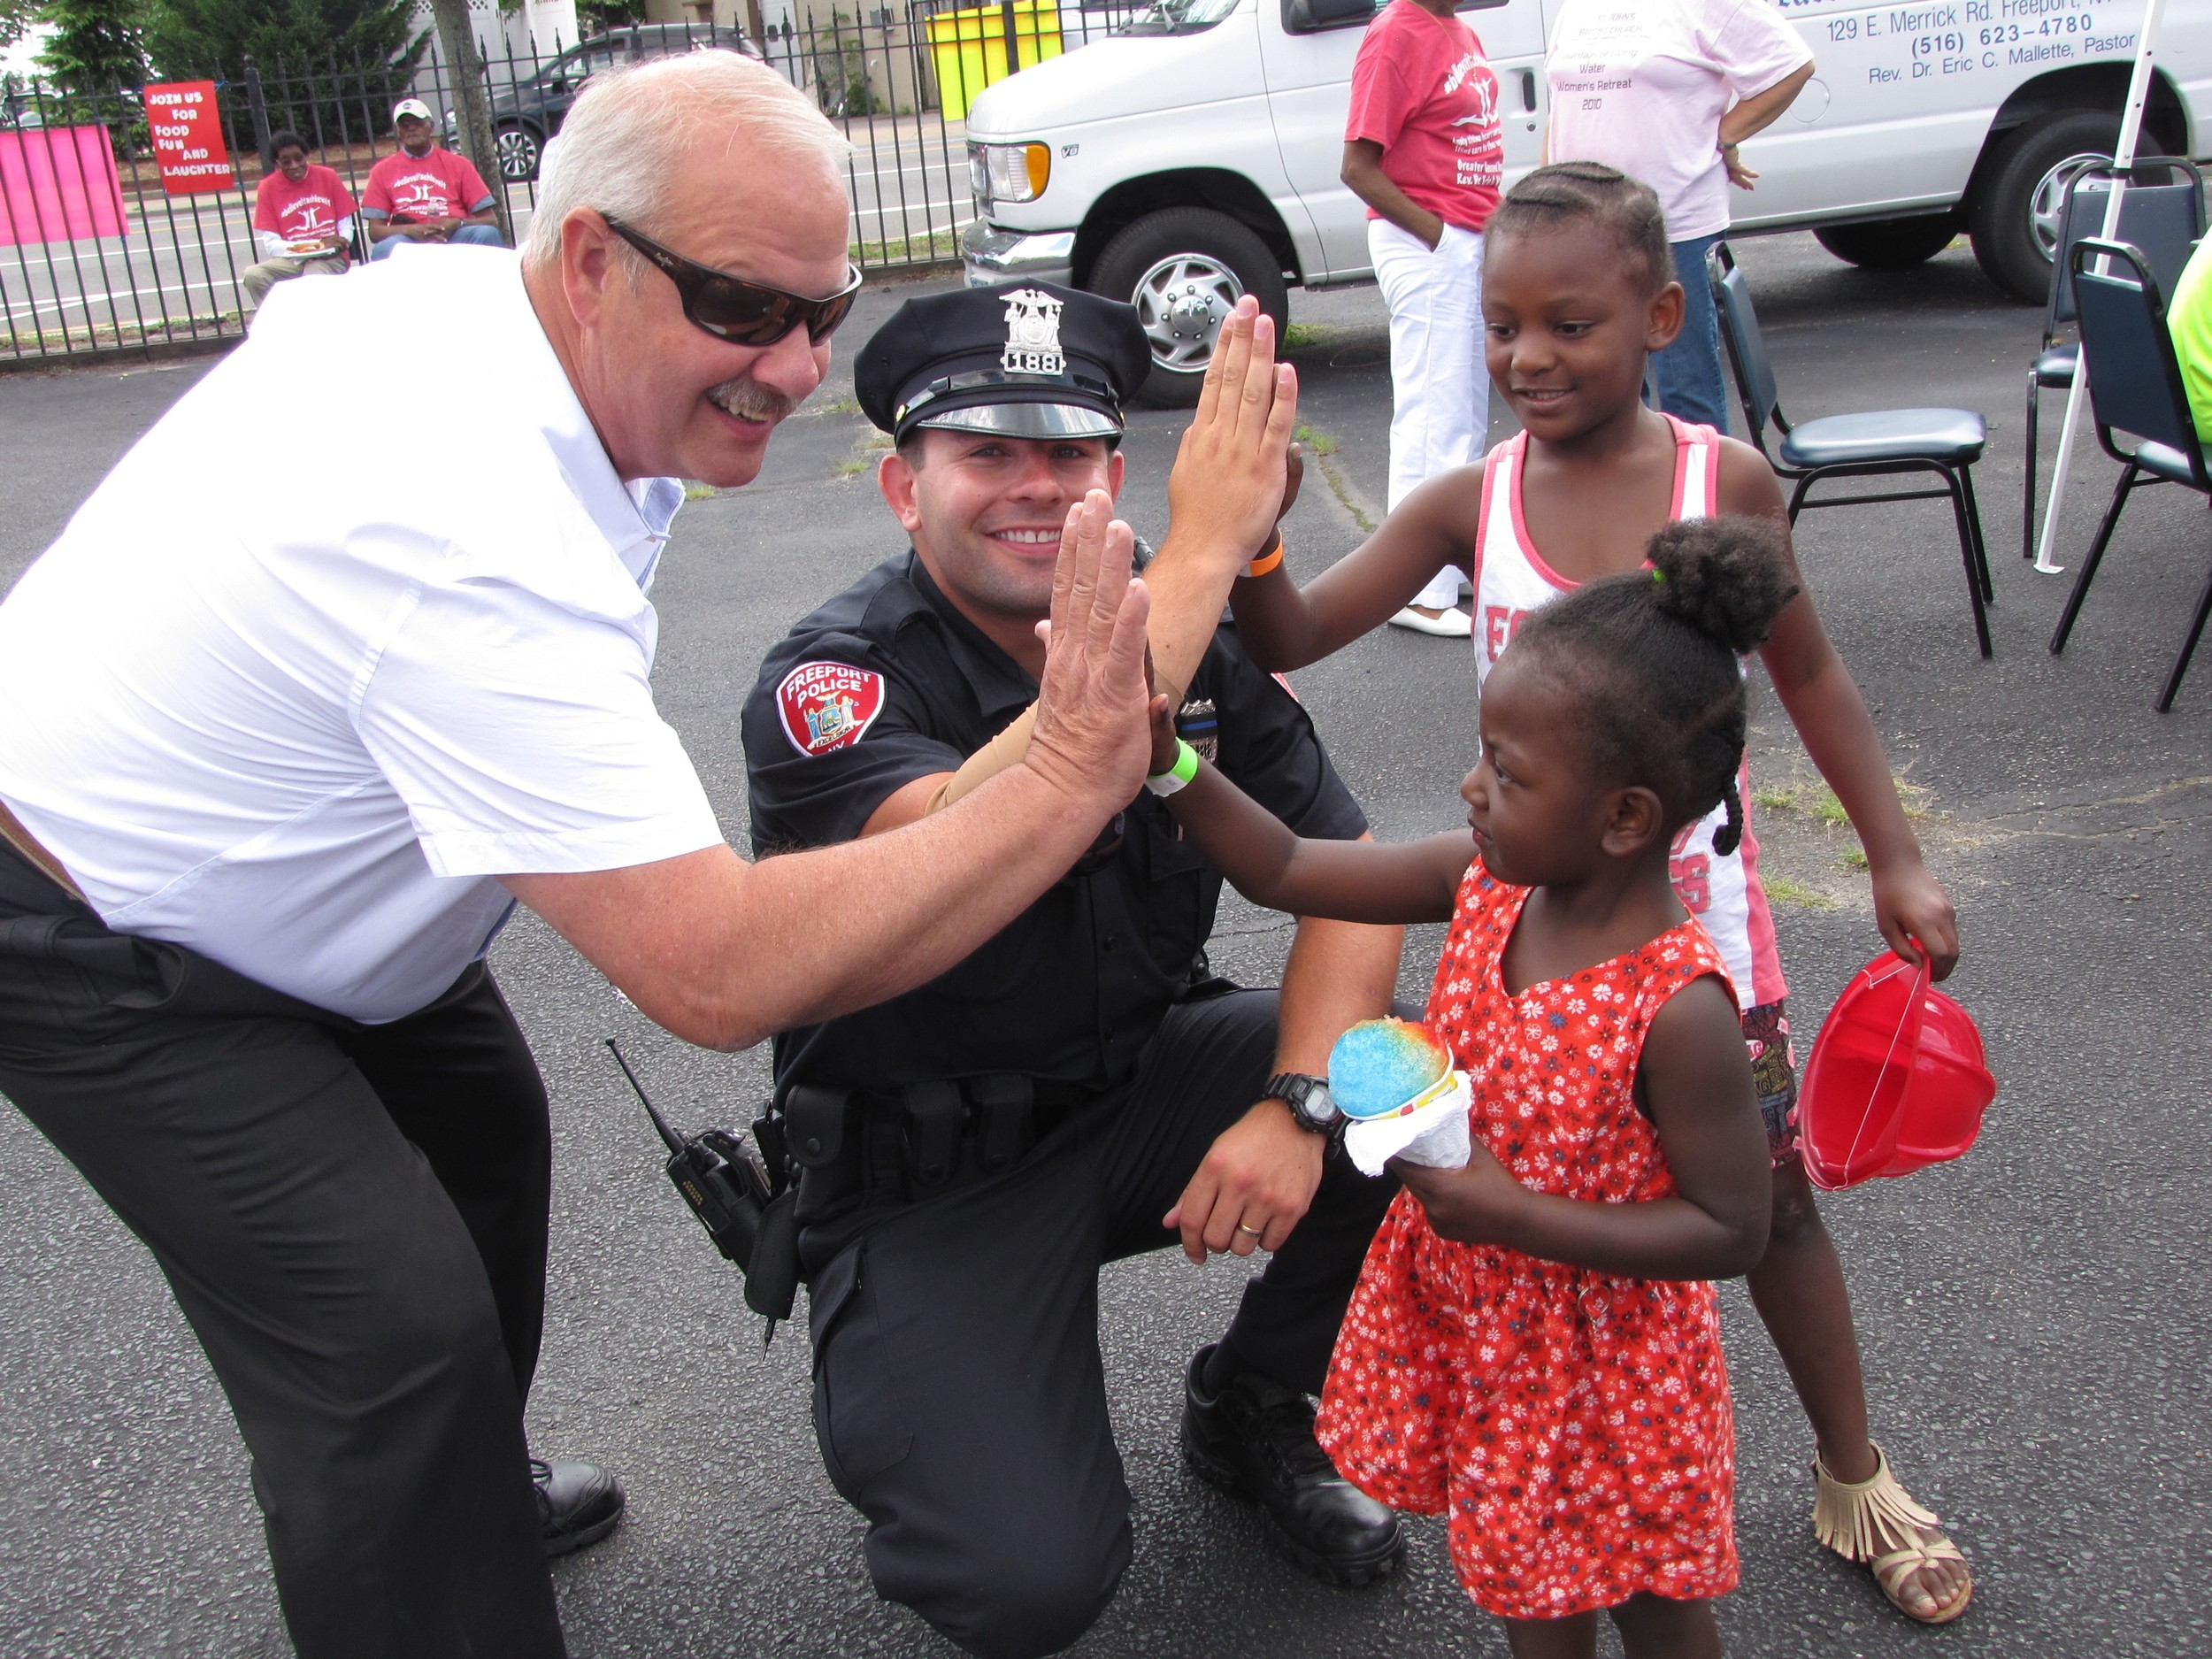 Mayor Robert Kennedy, and Freeport police officer Fred Gutmann greeted Kamyrn Jeter, 7, from New Visions School in Freeport, and Aneessa Hartman, 3 during the ninth annual Community Back-to-School Barbecue at the Greater Second Baptist Church in Freeport on Aug. 26.